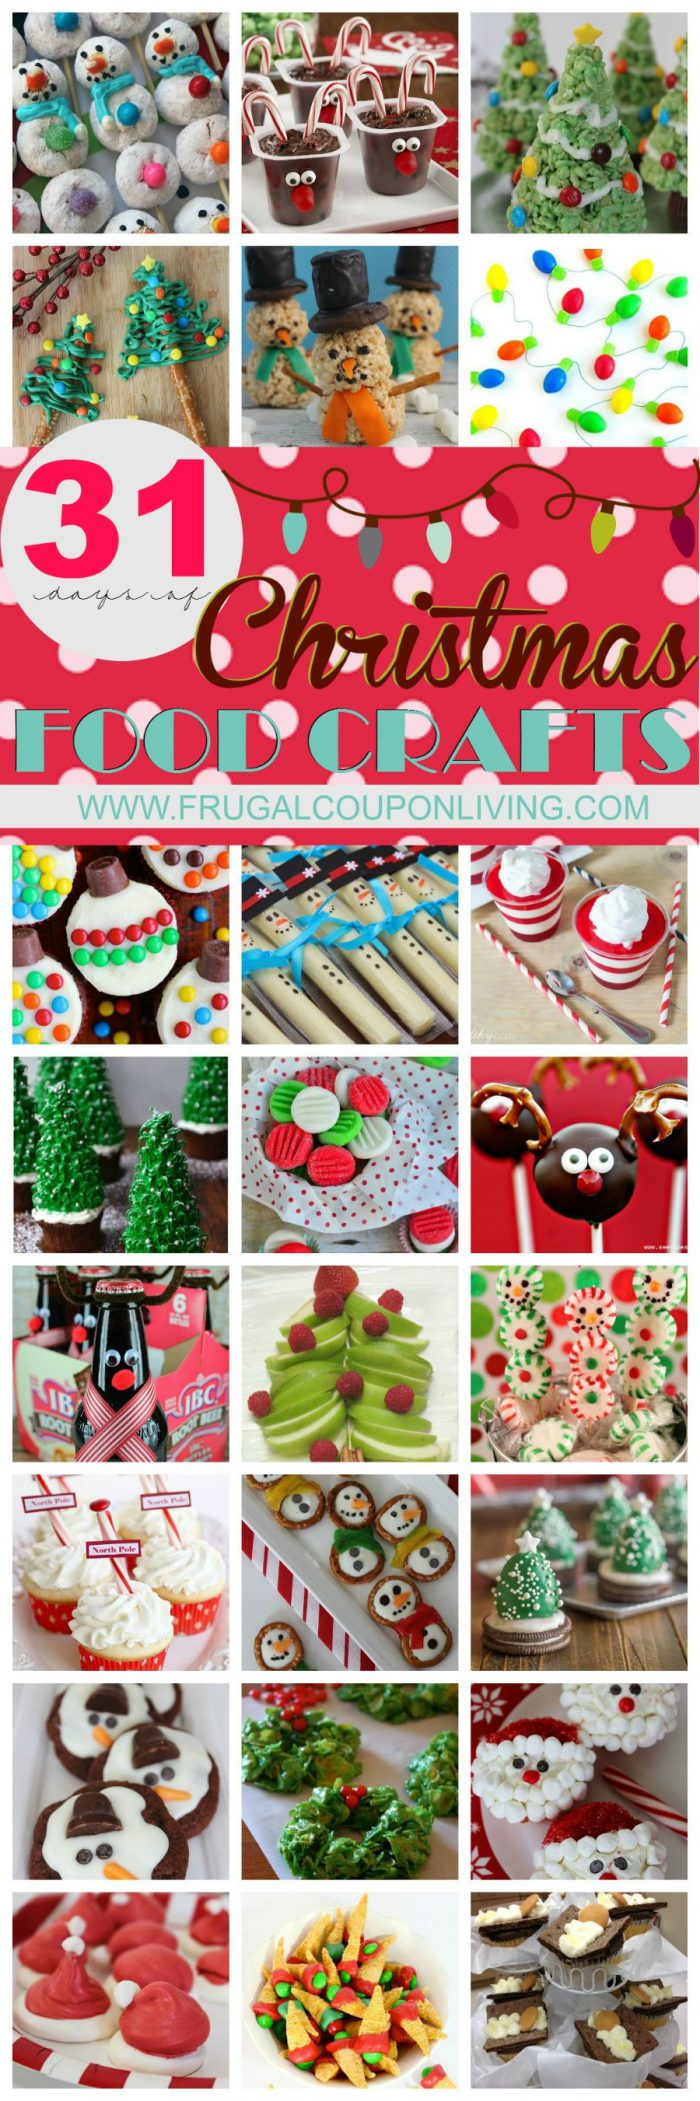 31 Christmas Food Crafts Collage on Frugal Coupon Living